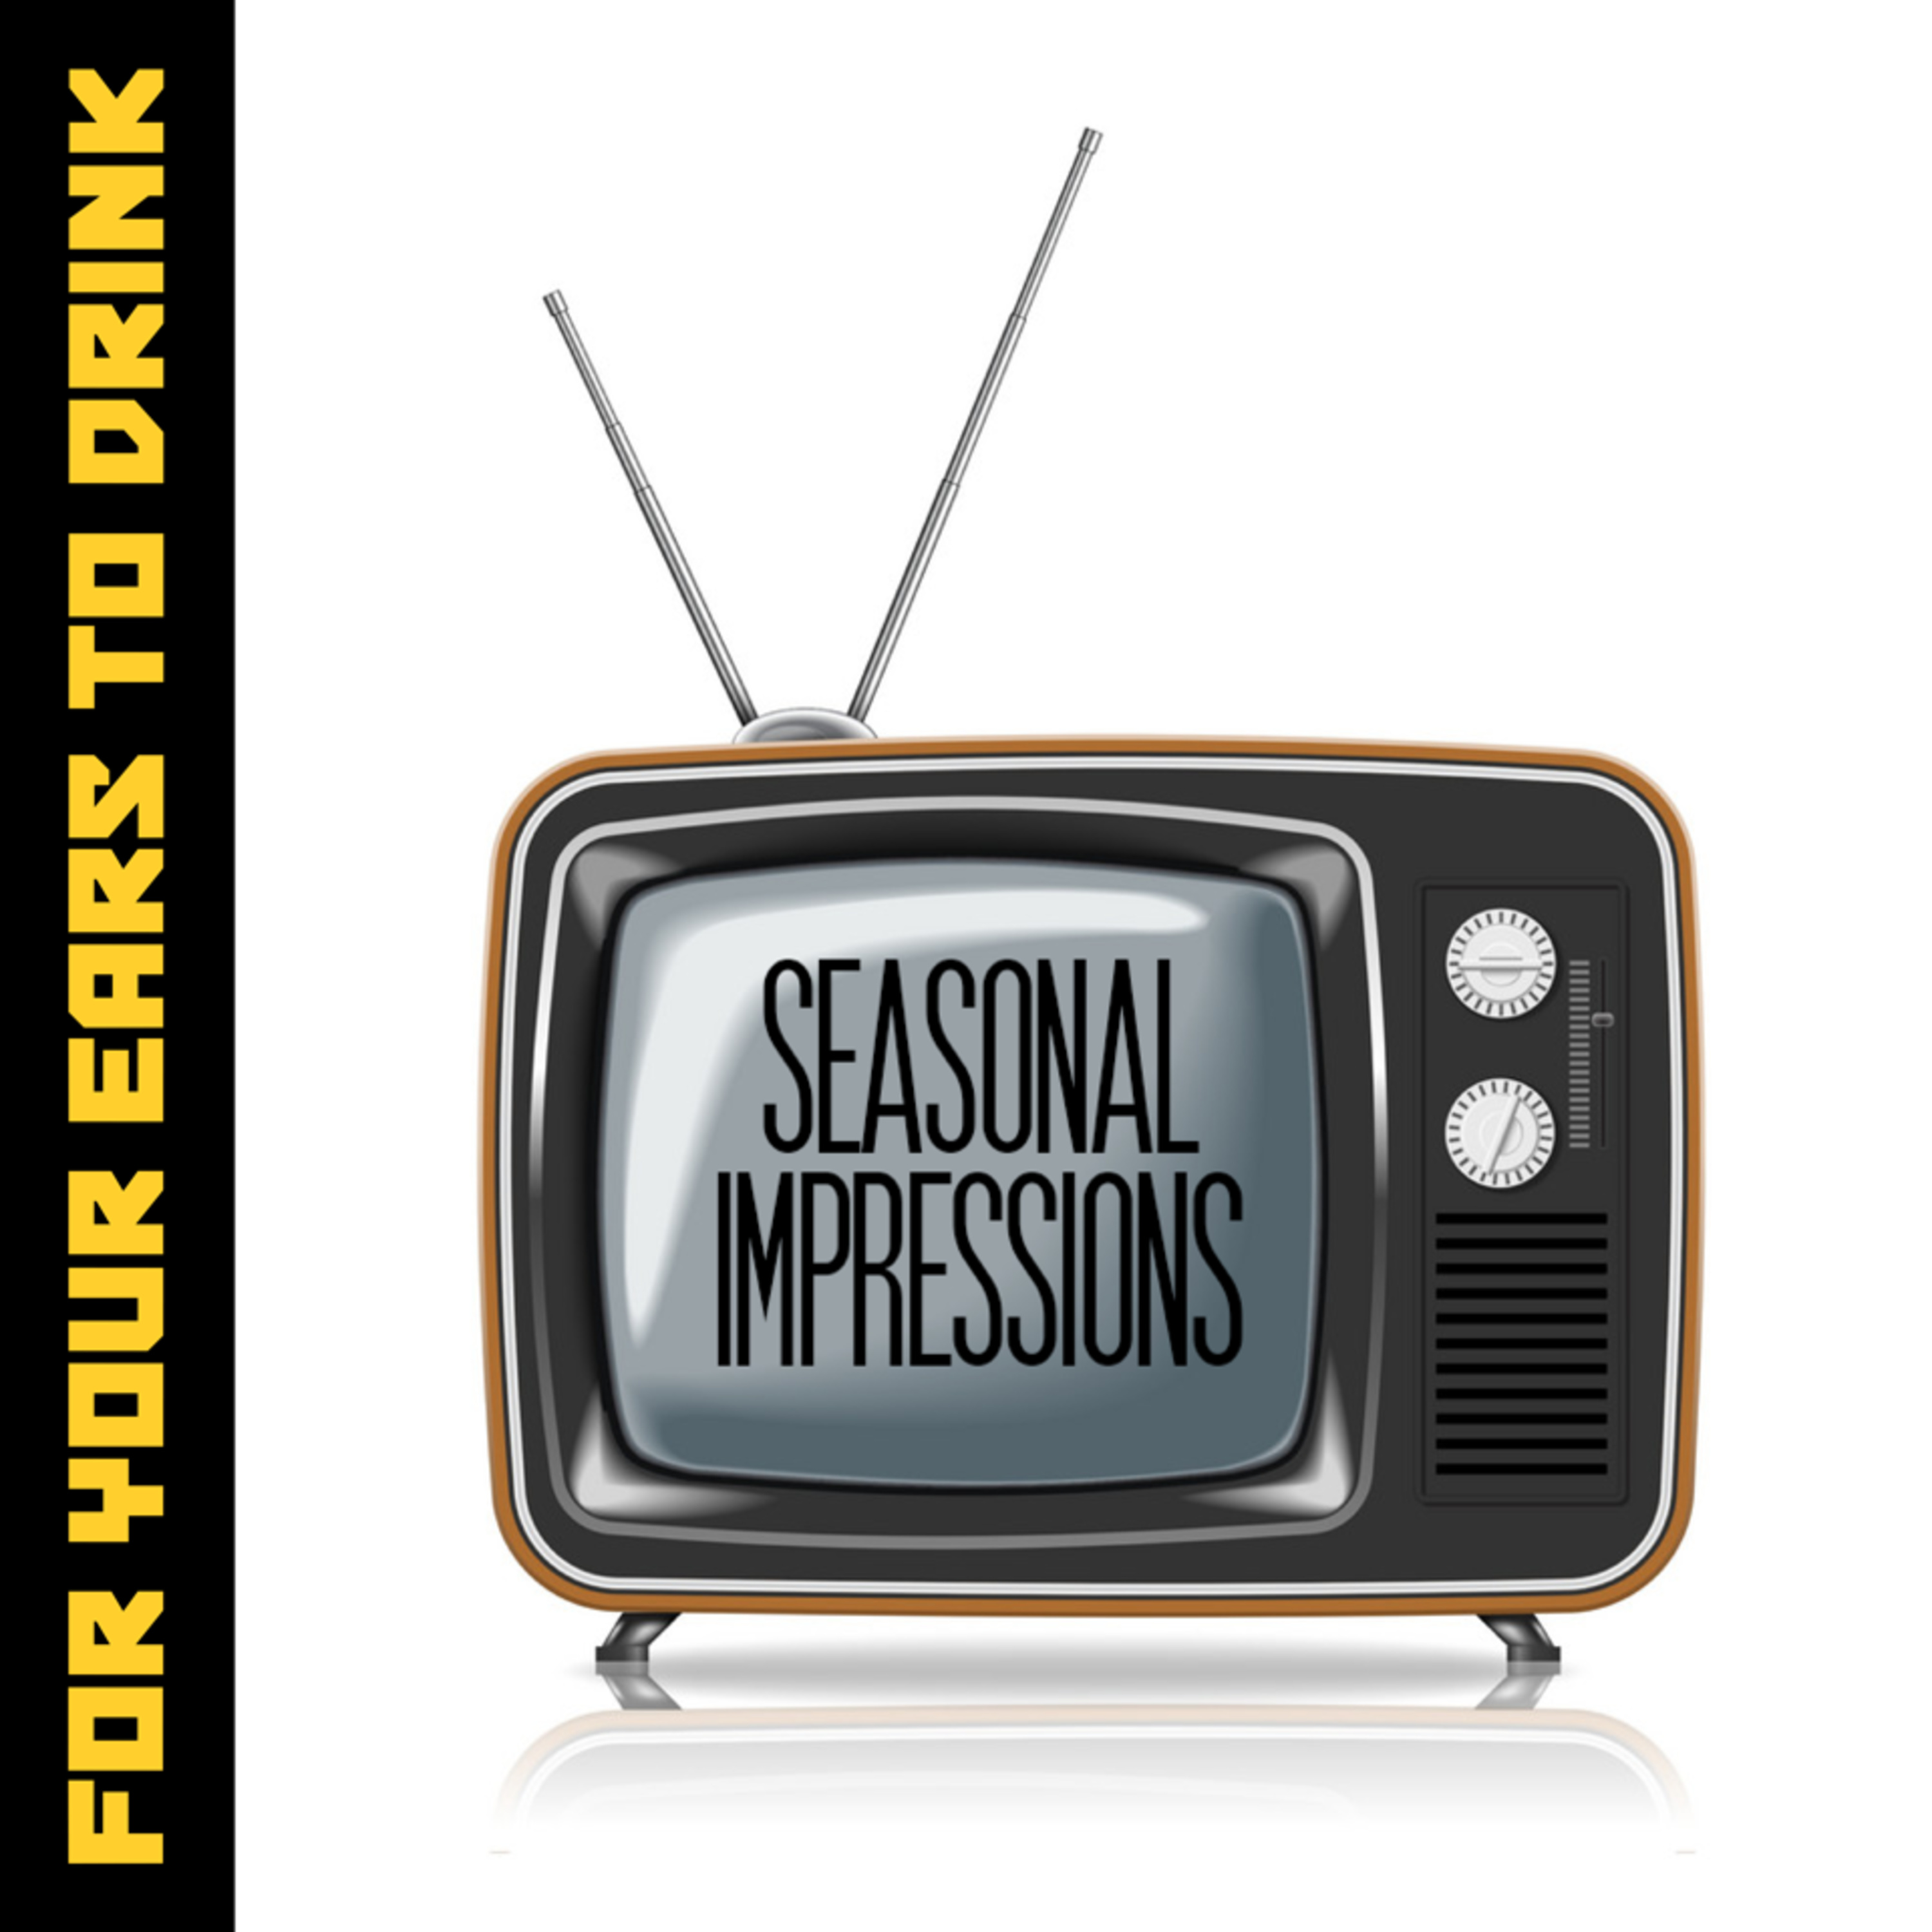 "Seasonal Impressions - Episode 10: Game Of Thrones Season 3 - ""Ok, The Red Wedding was crazy but..."""